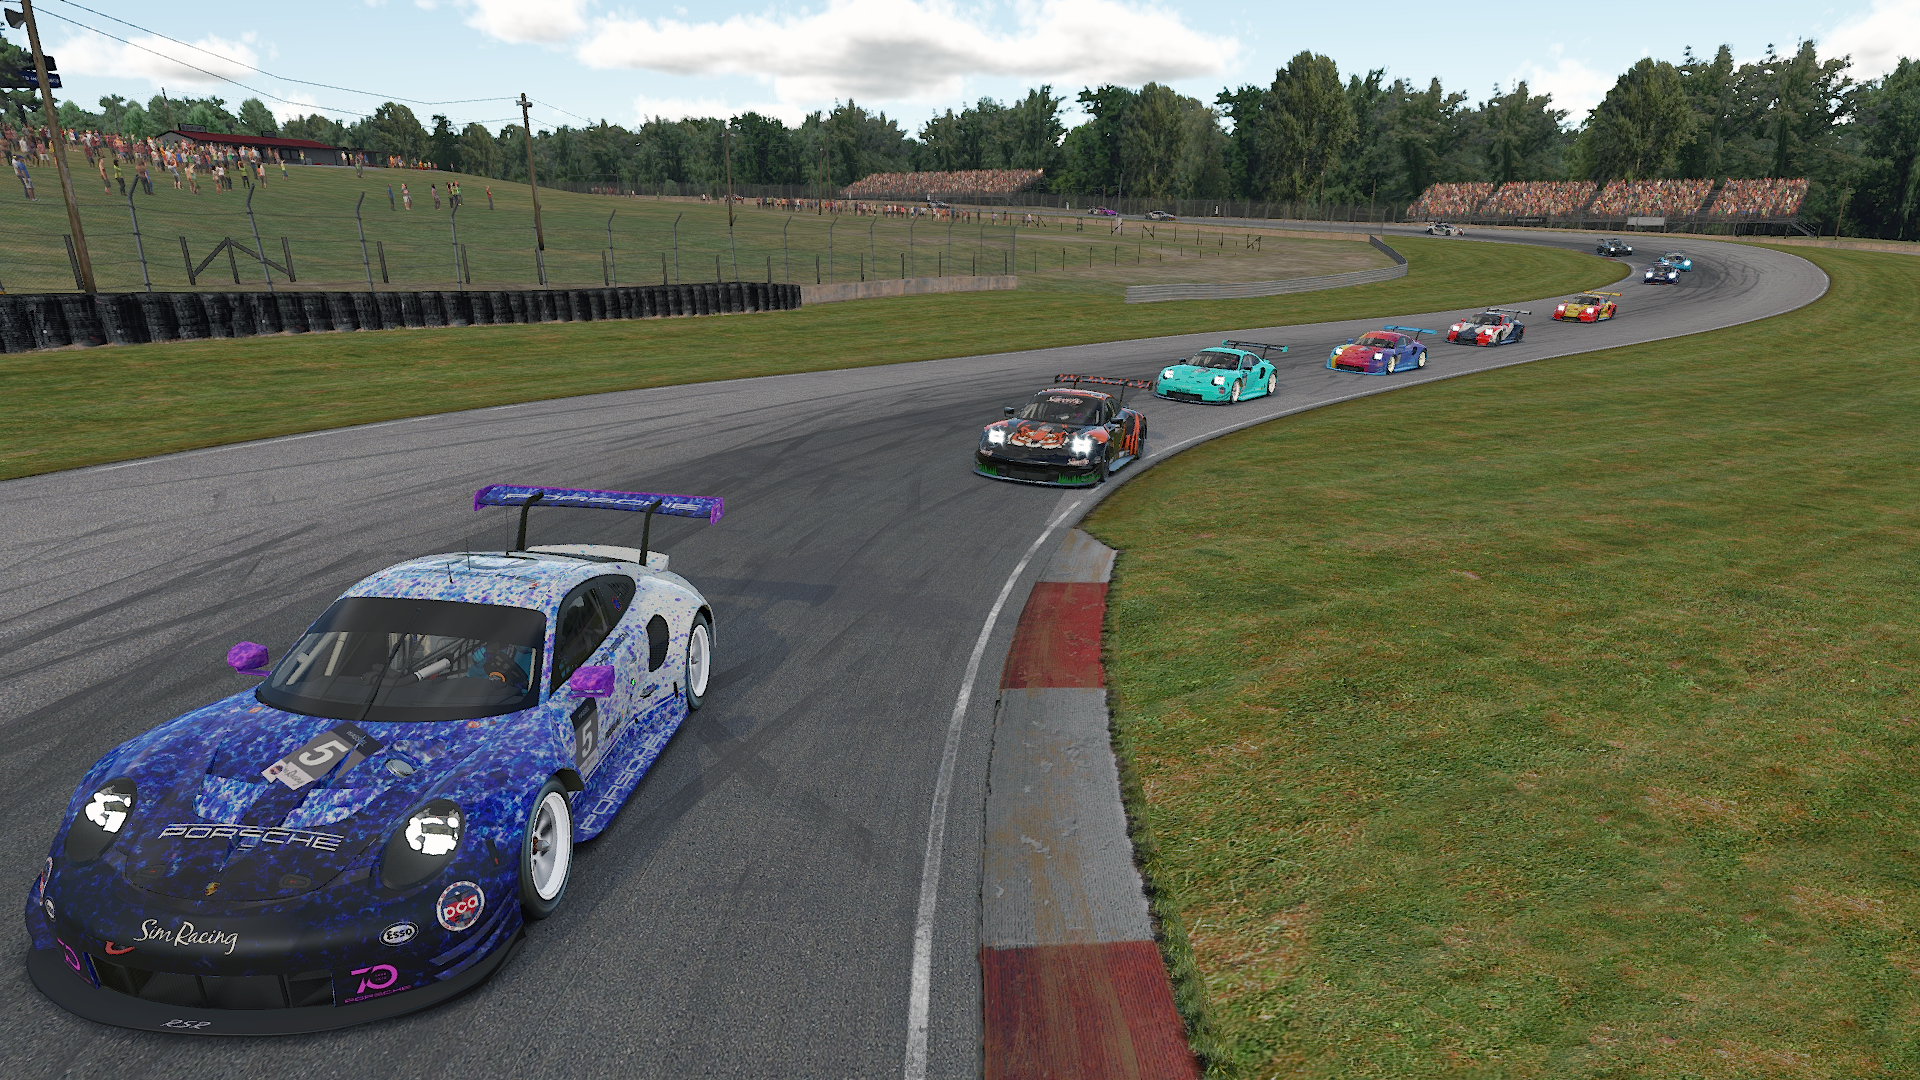 The Sportsman and Rookies race at Mid-Ohio in Series 4